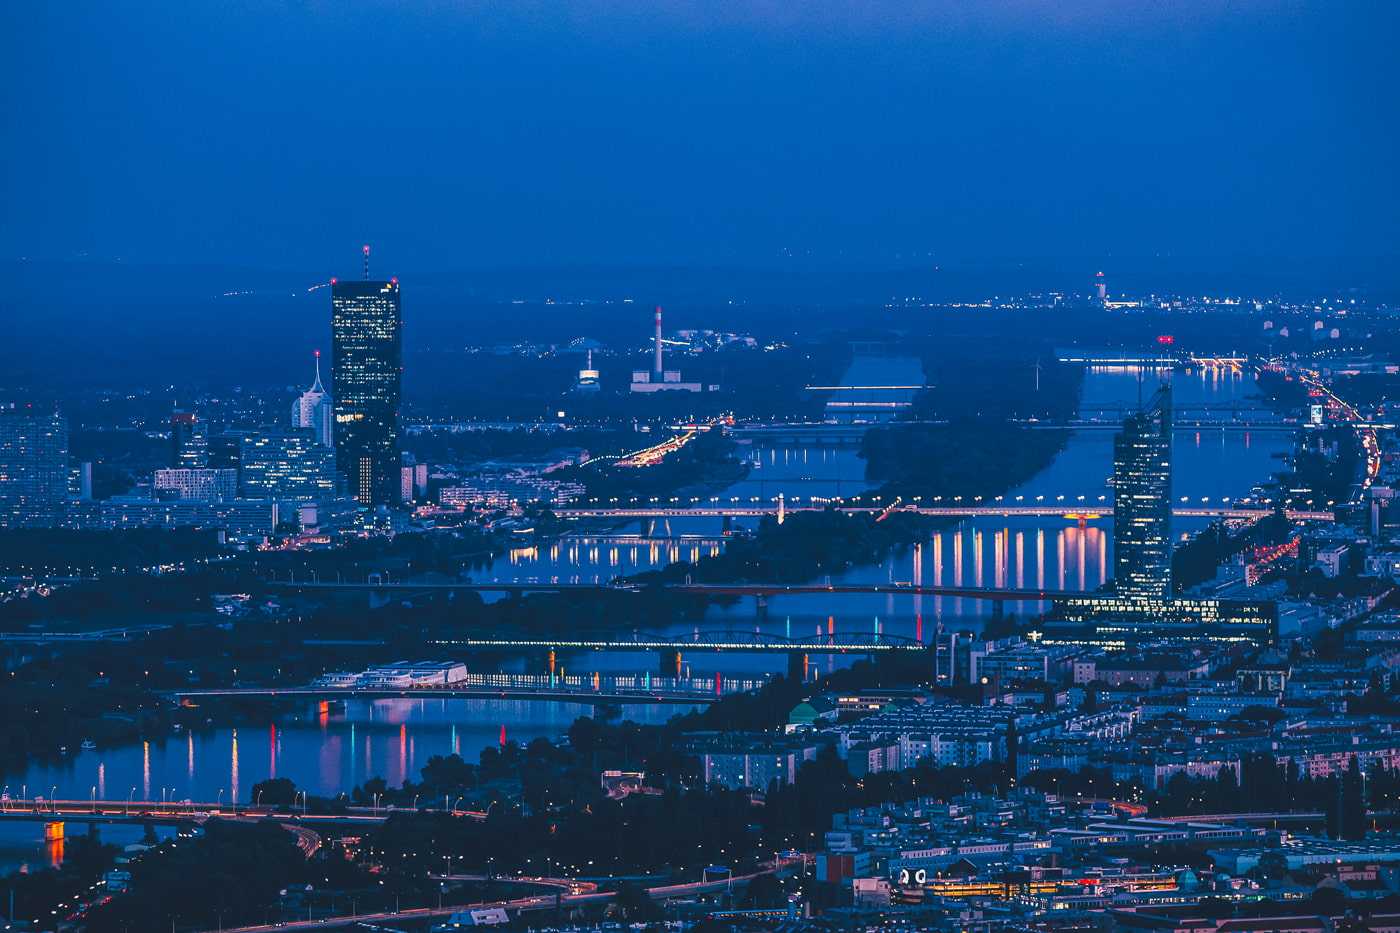 The 10 Best Photography Spots in Vienna